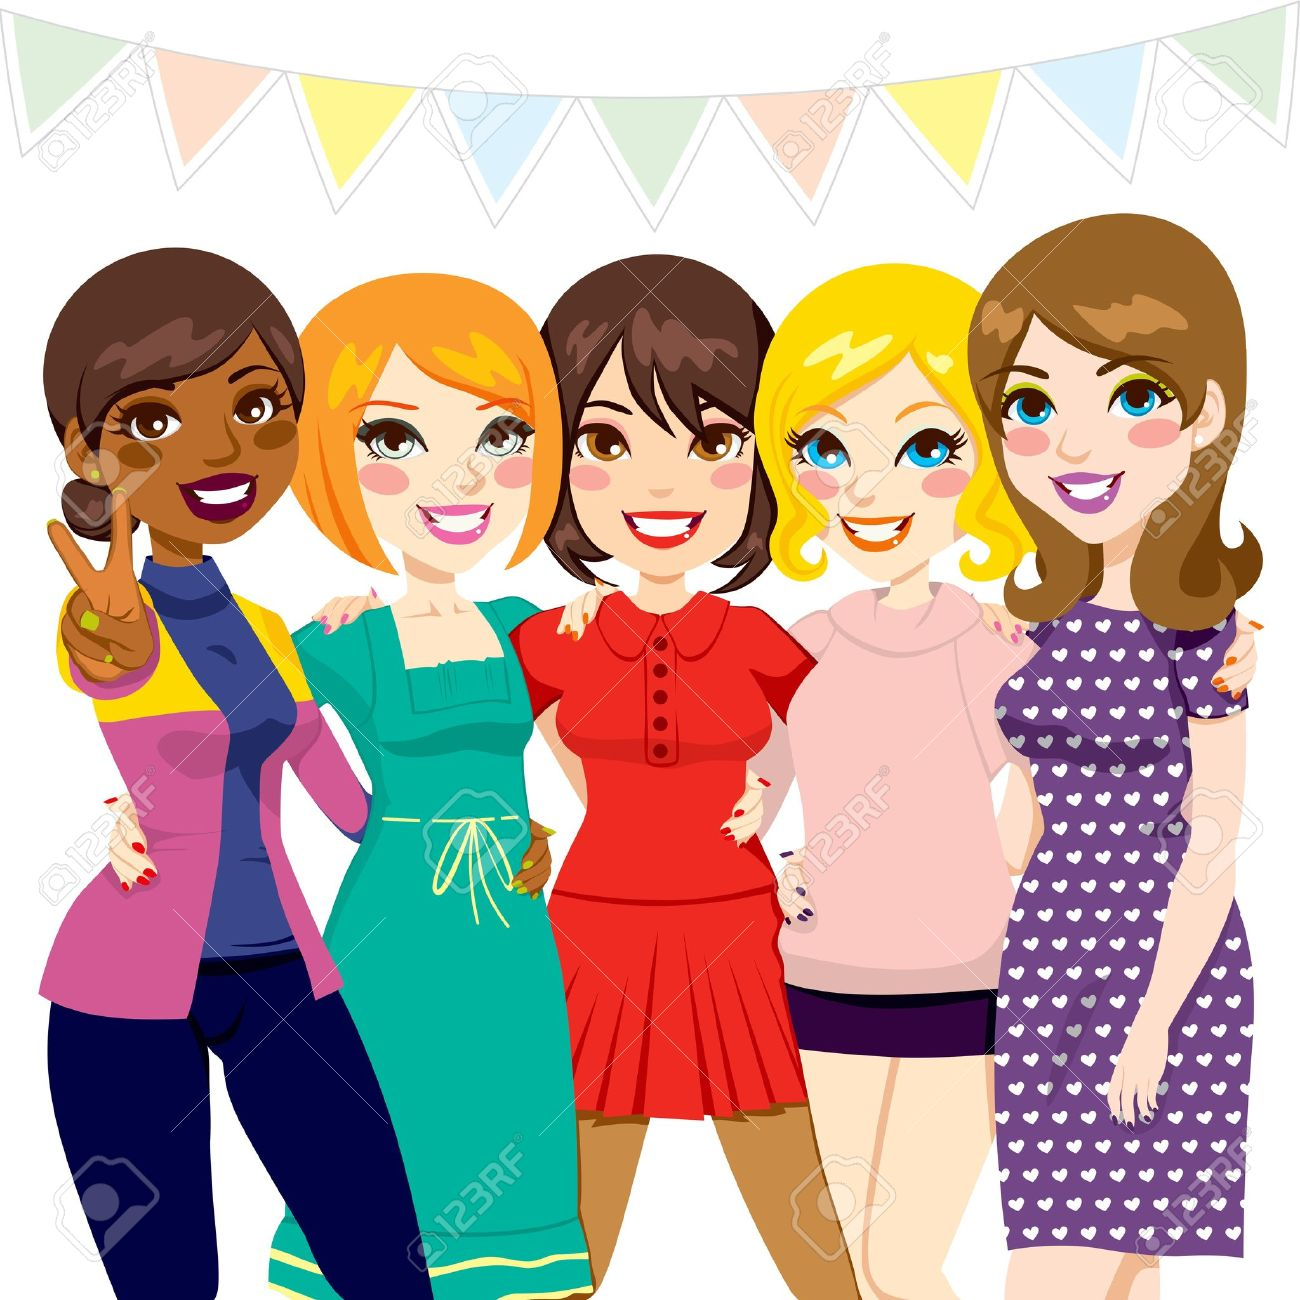 five women friends having fun together at a celebration party